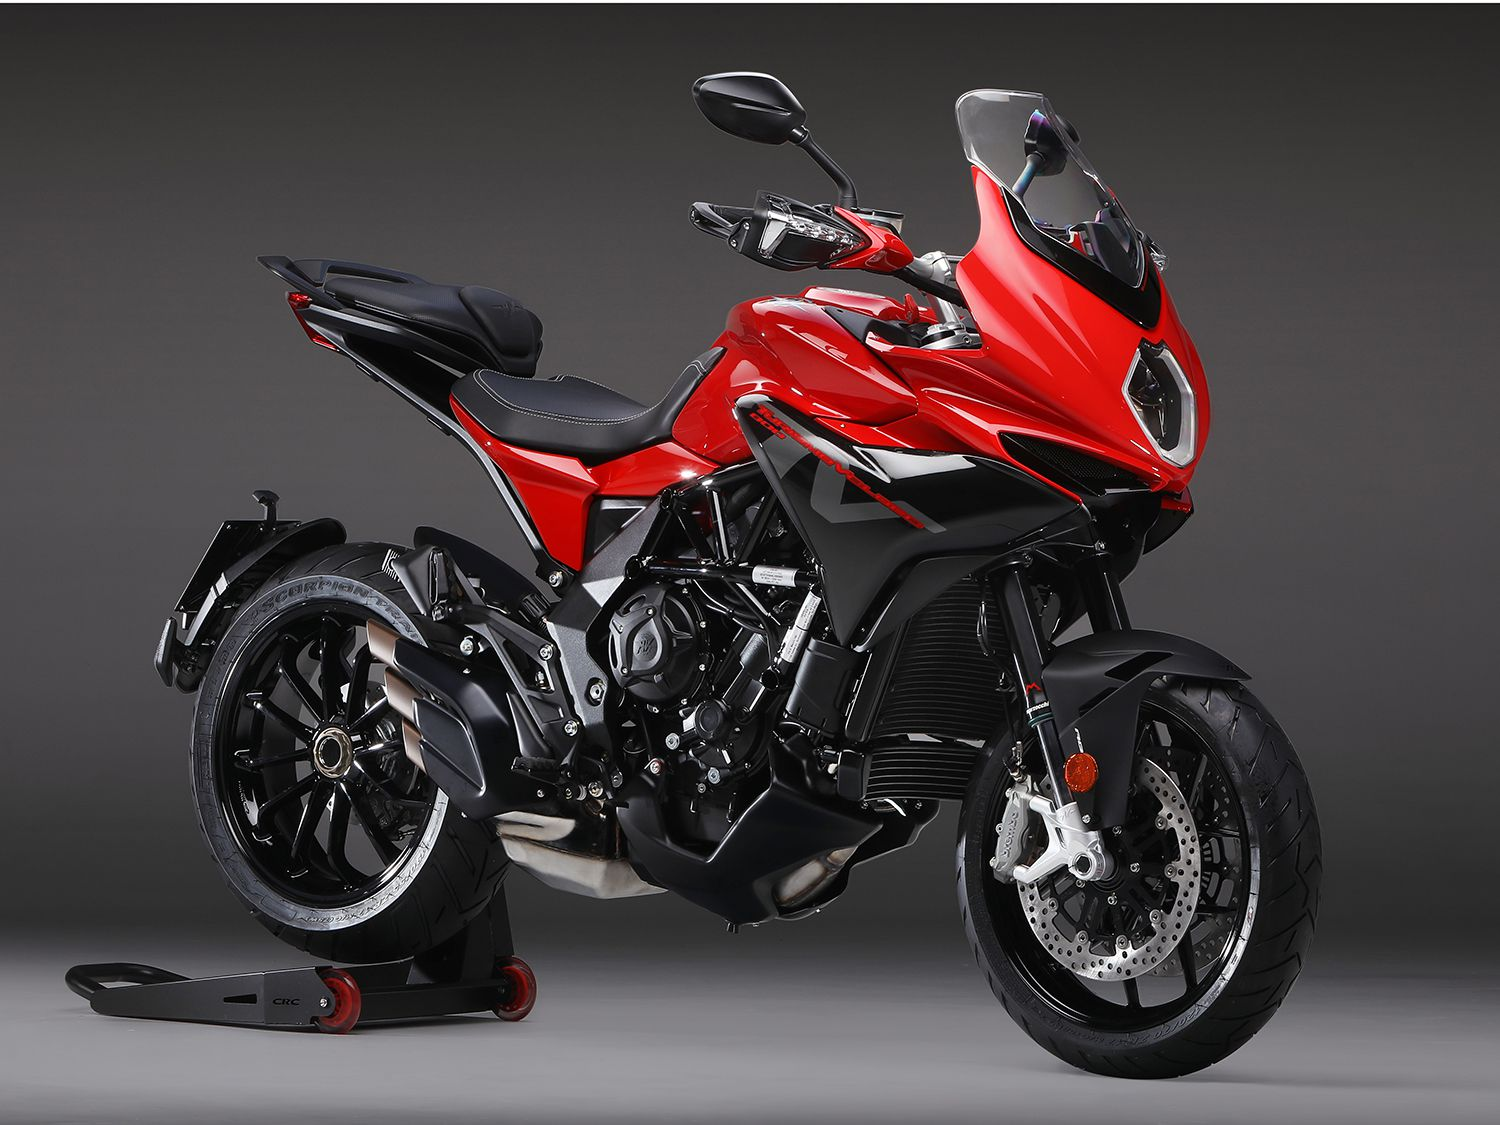 "<h2>2020 MV Agusta Tourismo Veloce 800 Rosso</h2> </br> One of the three in MV Agusta's ""Red Range"" is the 2020 Tourismo Veloce 800 Rosso. The other two include the Dragster 800 Rosso and Brutale 800 Rosso."